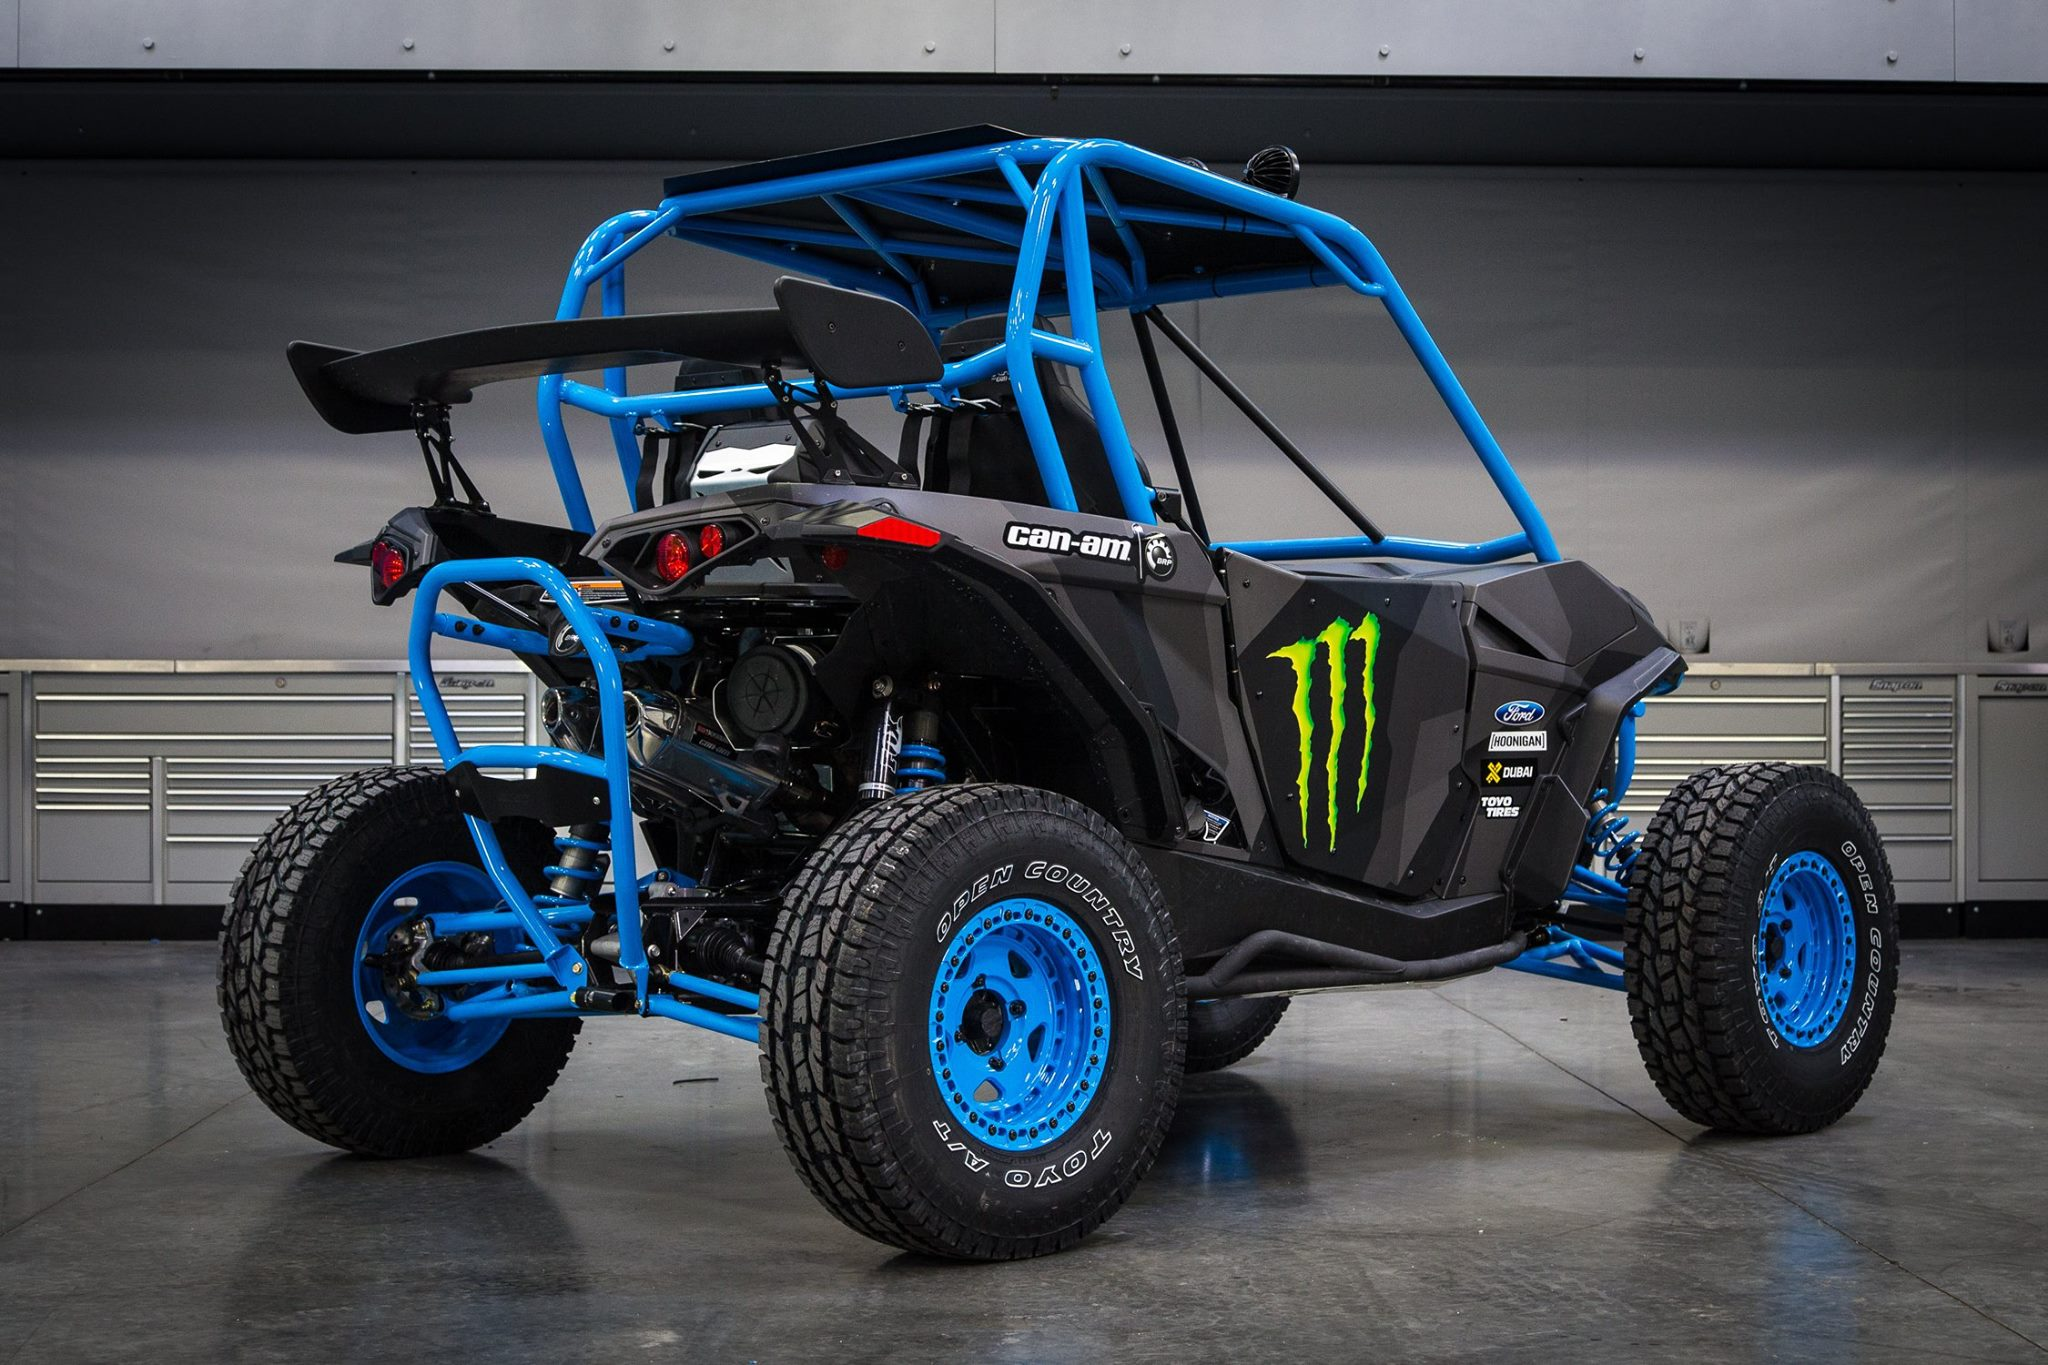 can am brand ambassador ken block showcases custom maverick side by side vehicle builds. Black Bedroom Furniture Sets. Home Design Ideas